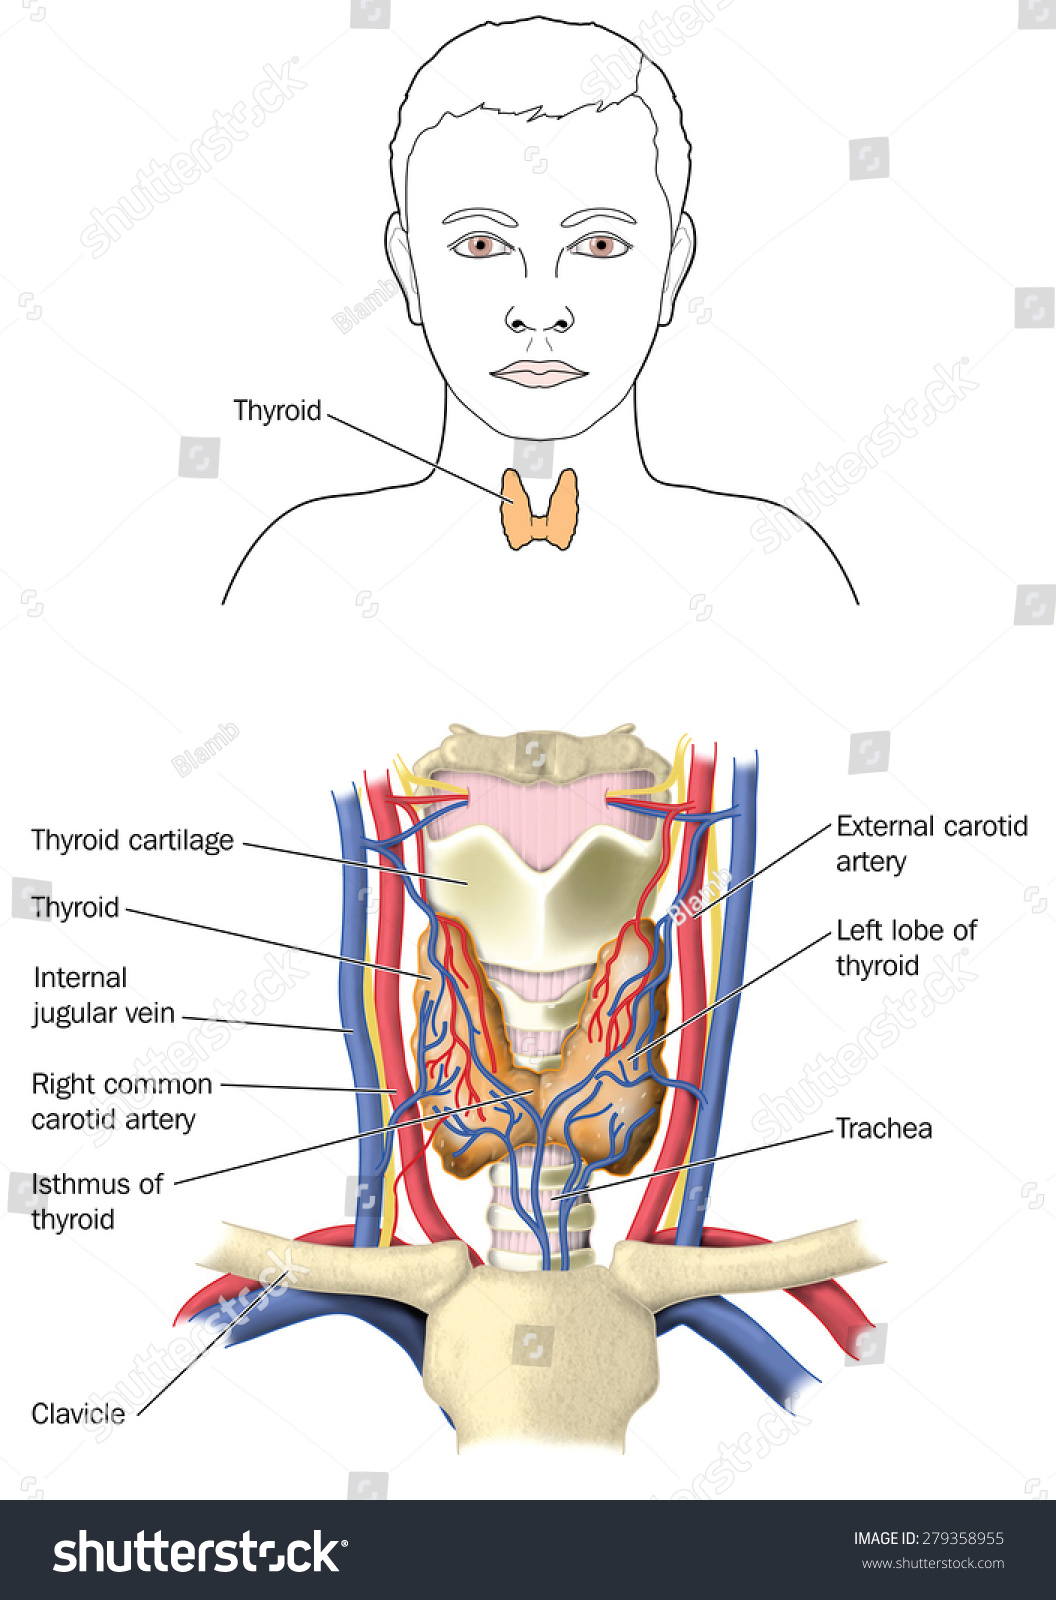 Location Relative Anatomy Thyroid Gland Showing Stock Illustration ...